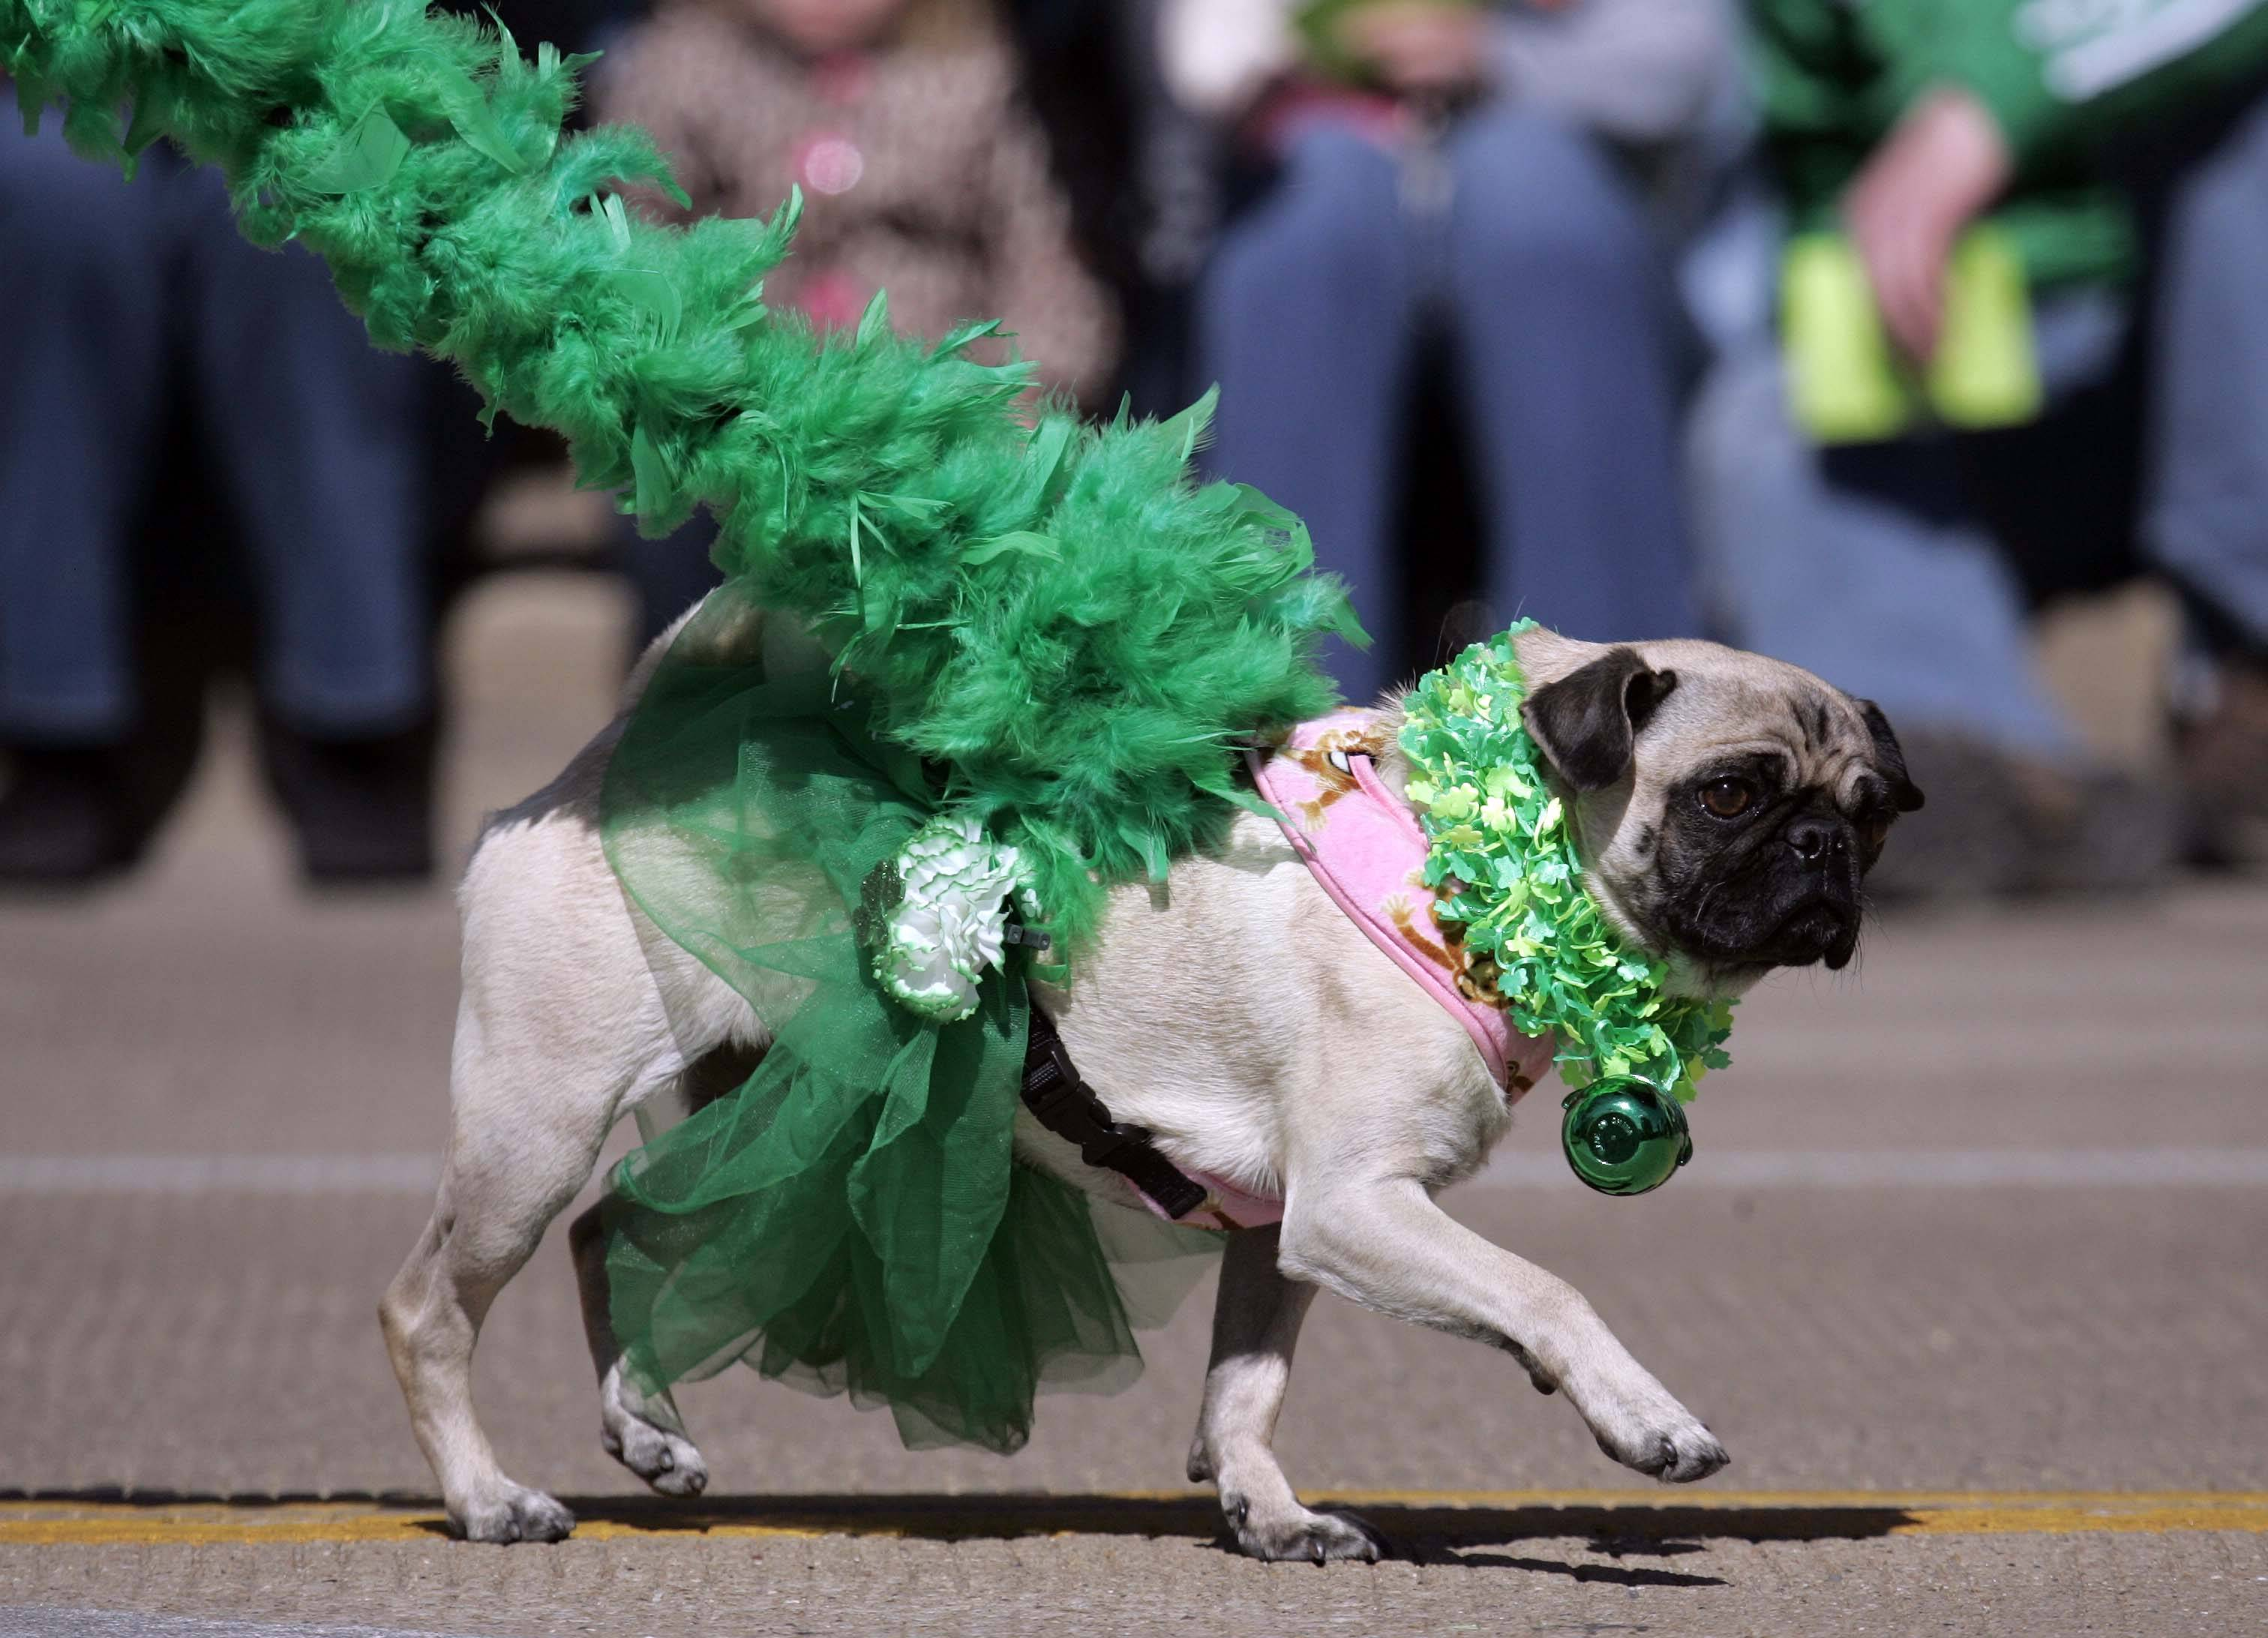 Lexi Ryan, a pug, from St. Charles is all decked out for the dog costume contest at the 2012 St. Patrick's Day parade in St. Charles.